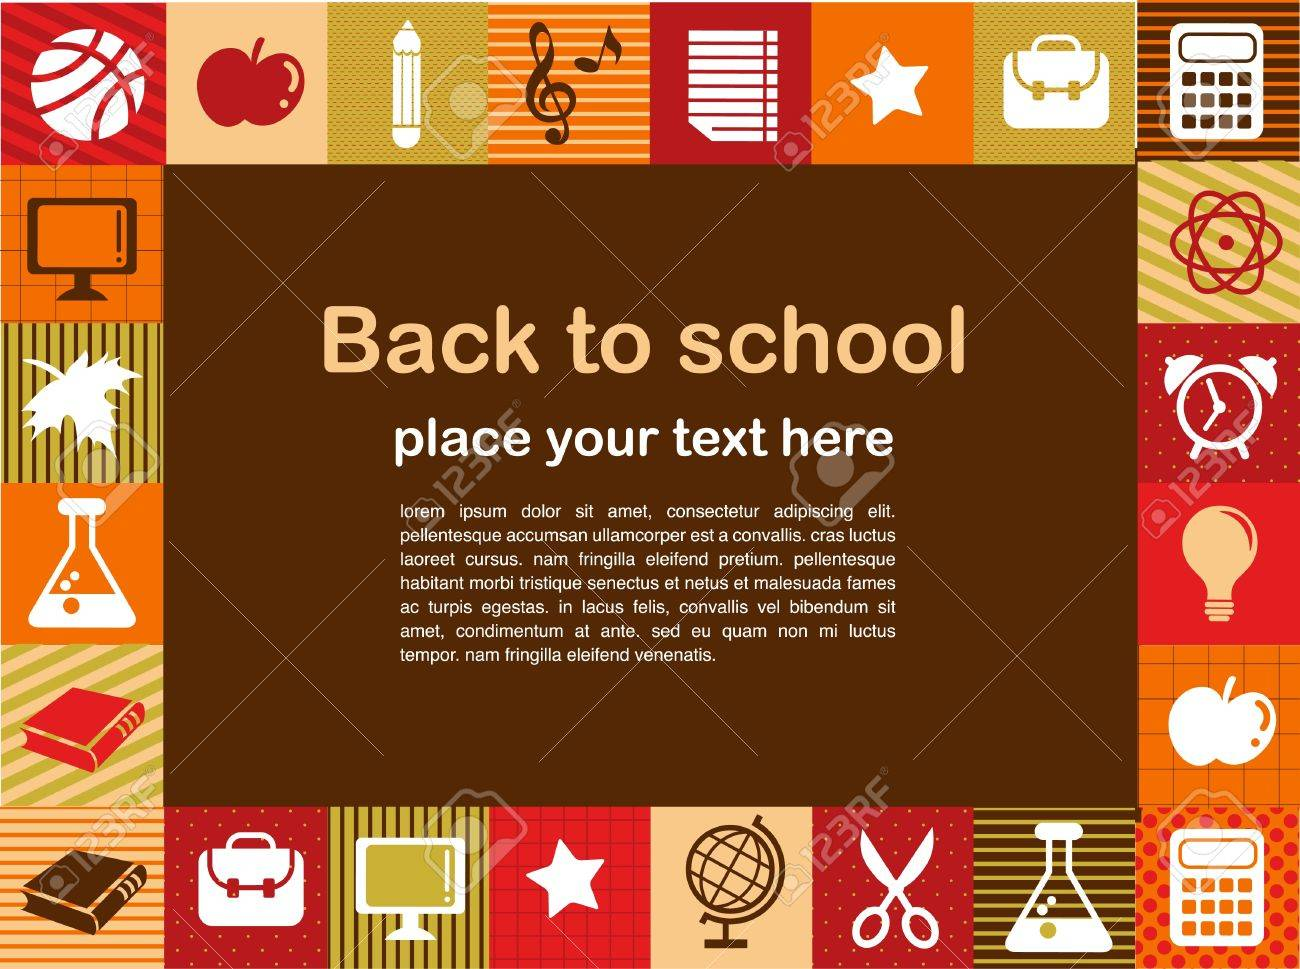 back to school - background with education icons - 9934700